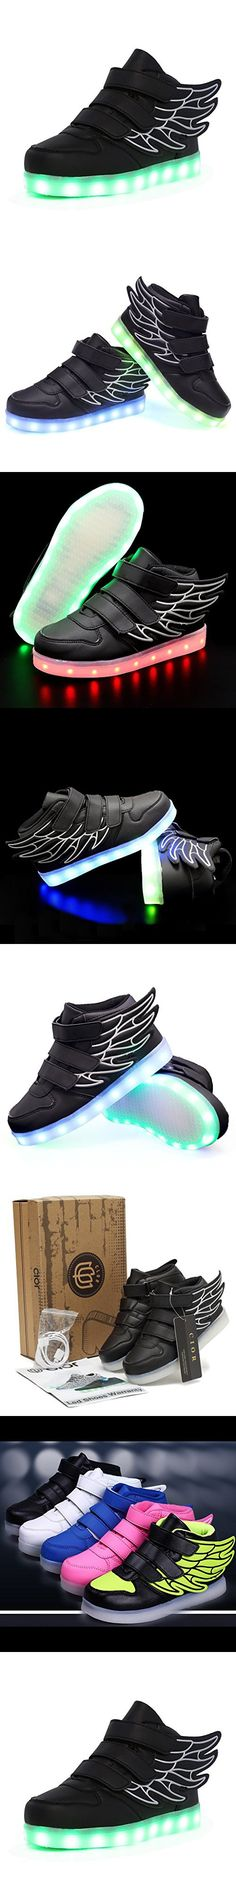 CIOR Kids Boy and Girl's 11 Color Wings Led Sneakers Light Up Flashing Shoes,102,01,27, 10 M US Toddler, 02Black